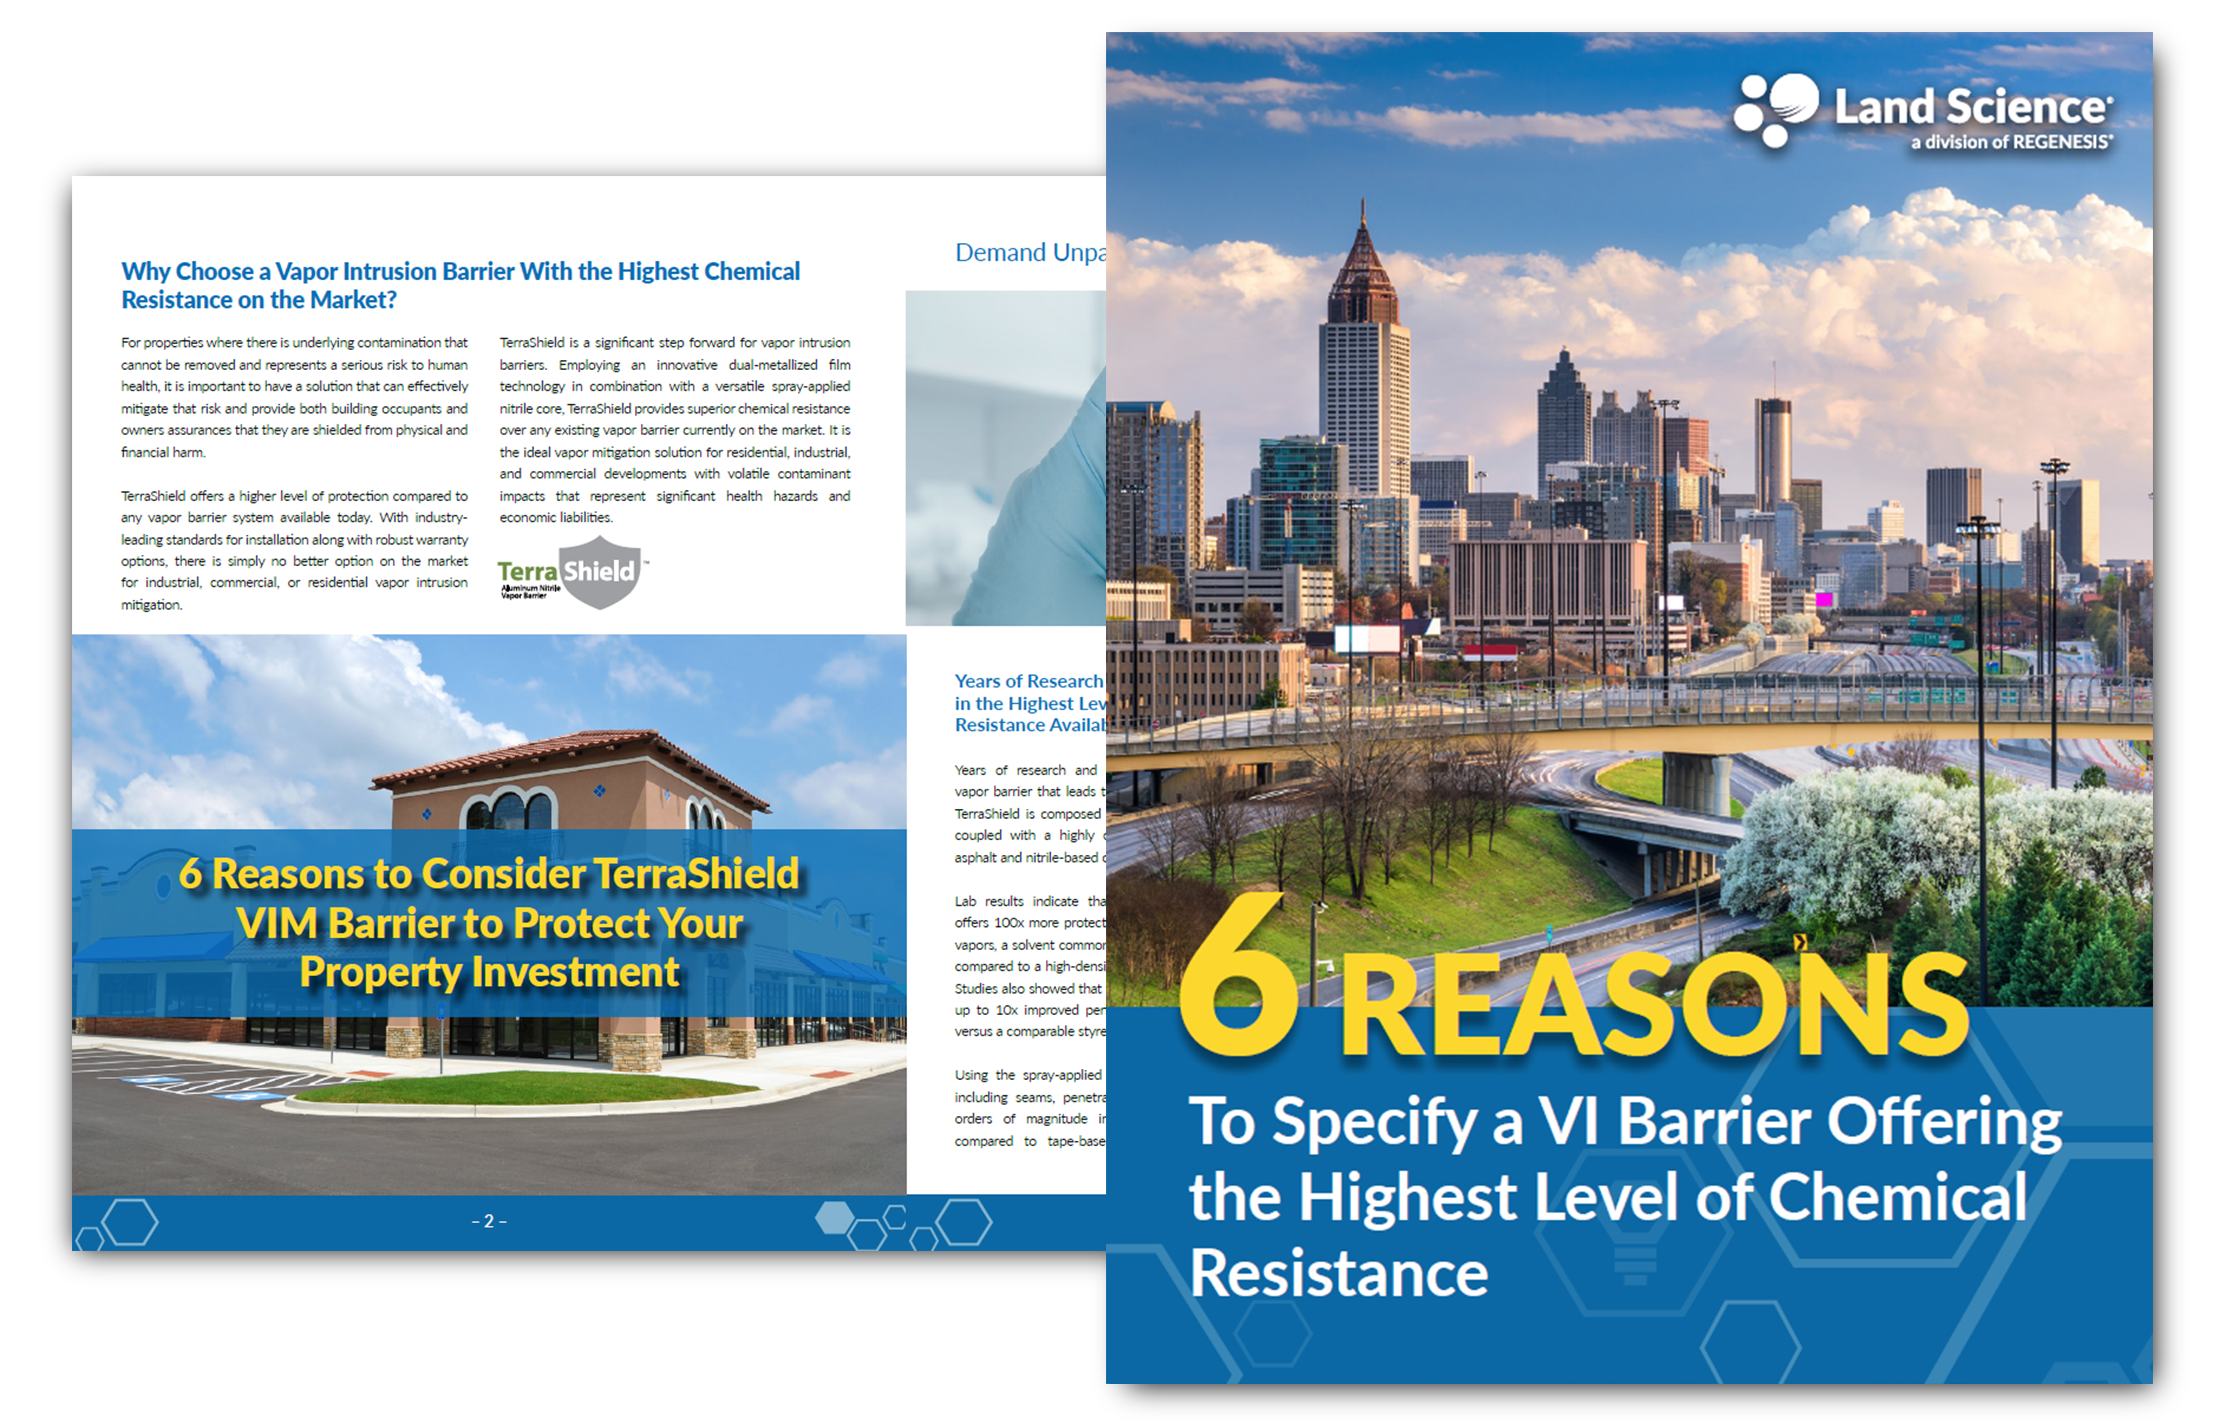 6 Reasons To Specify a VI Barrier Offering the Highest Level of Chemical Resistance